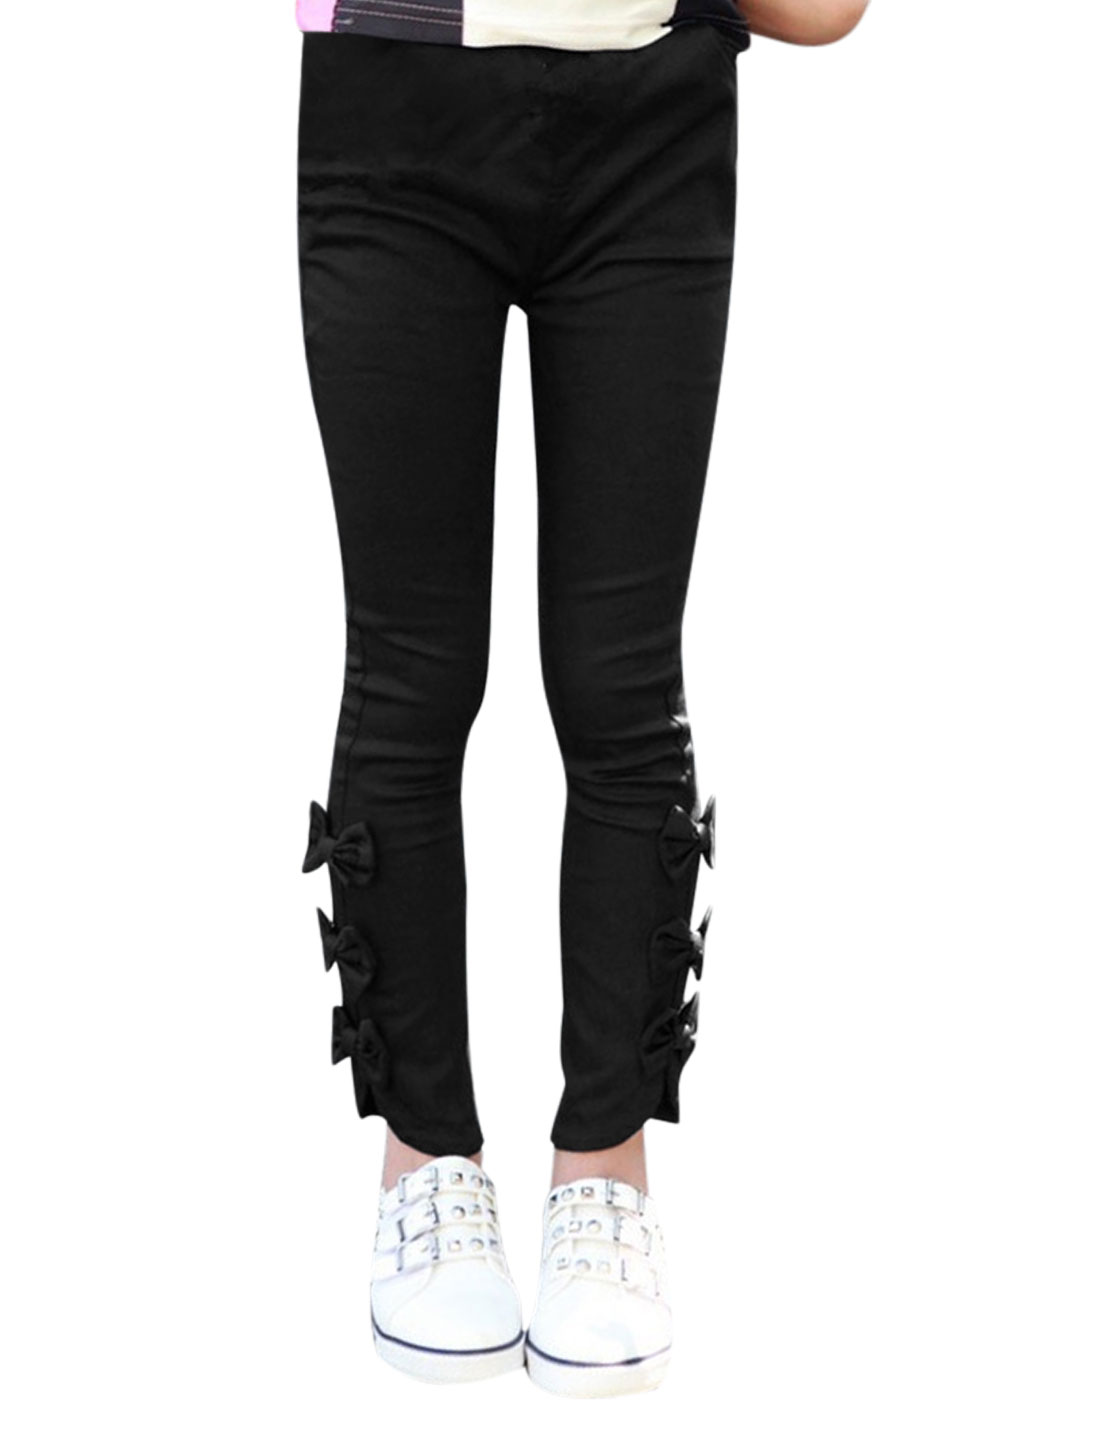 Girls Elastic Waist Front Pockets Slim Fit Bowknot Casual Pants Black 4T